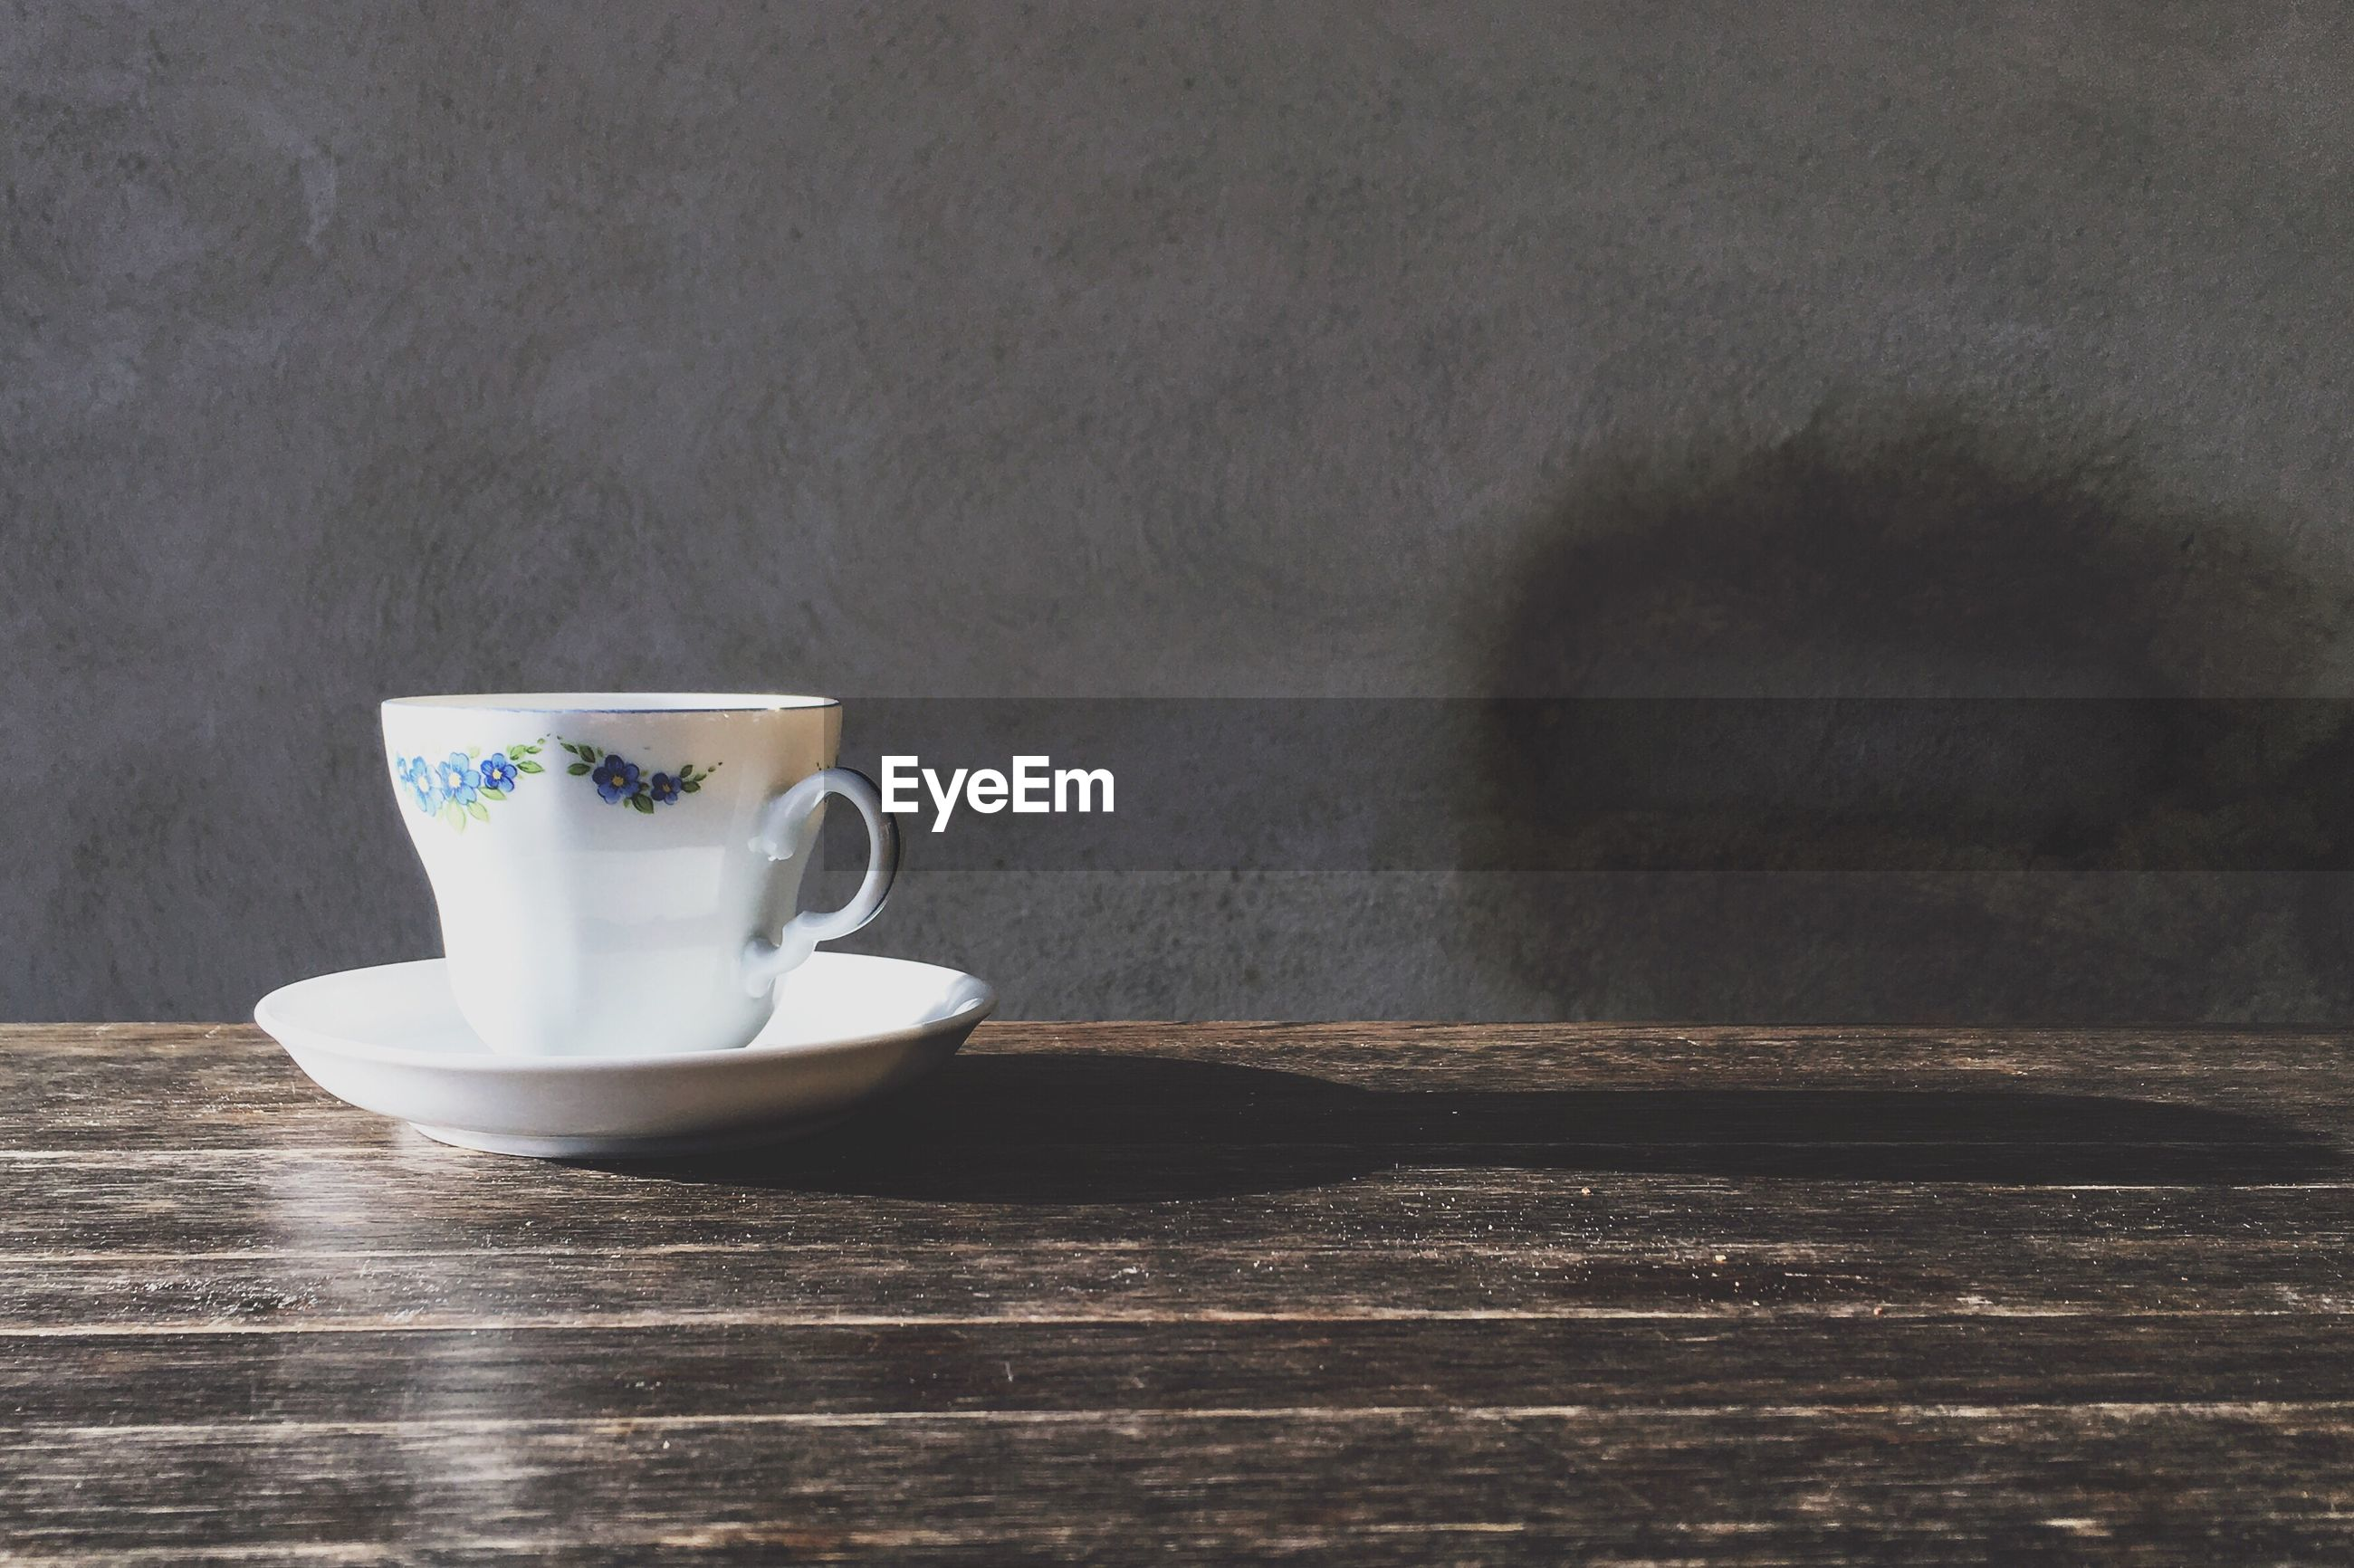 Coffee cup against wall on wooden table